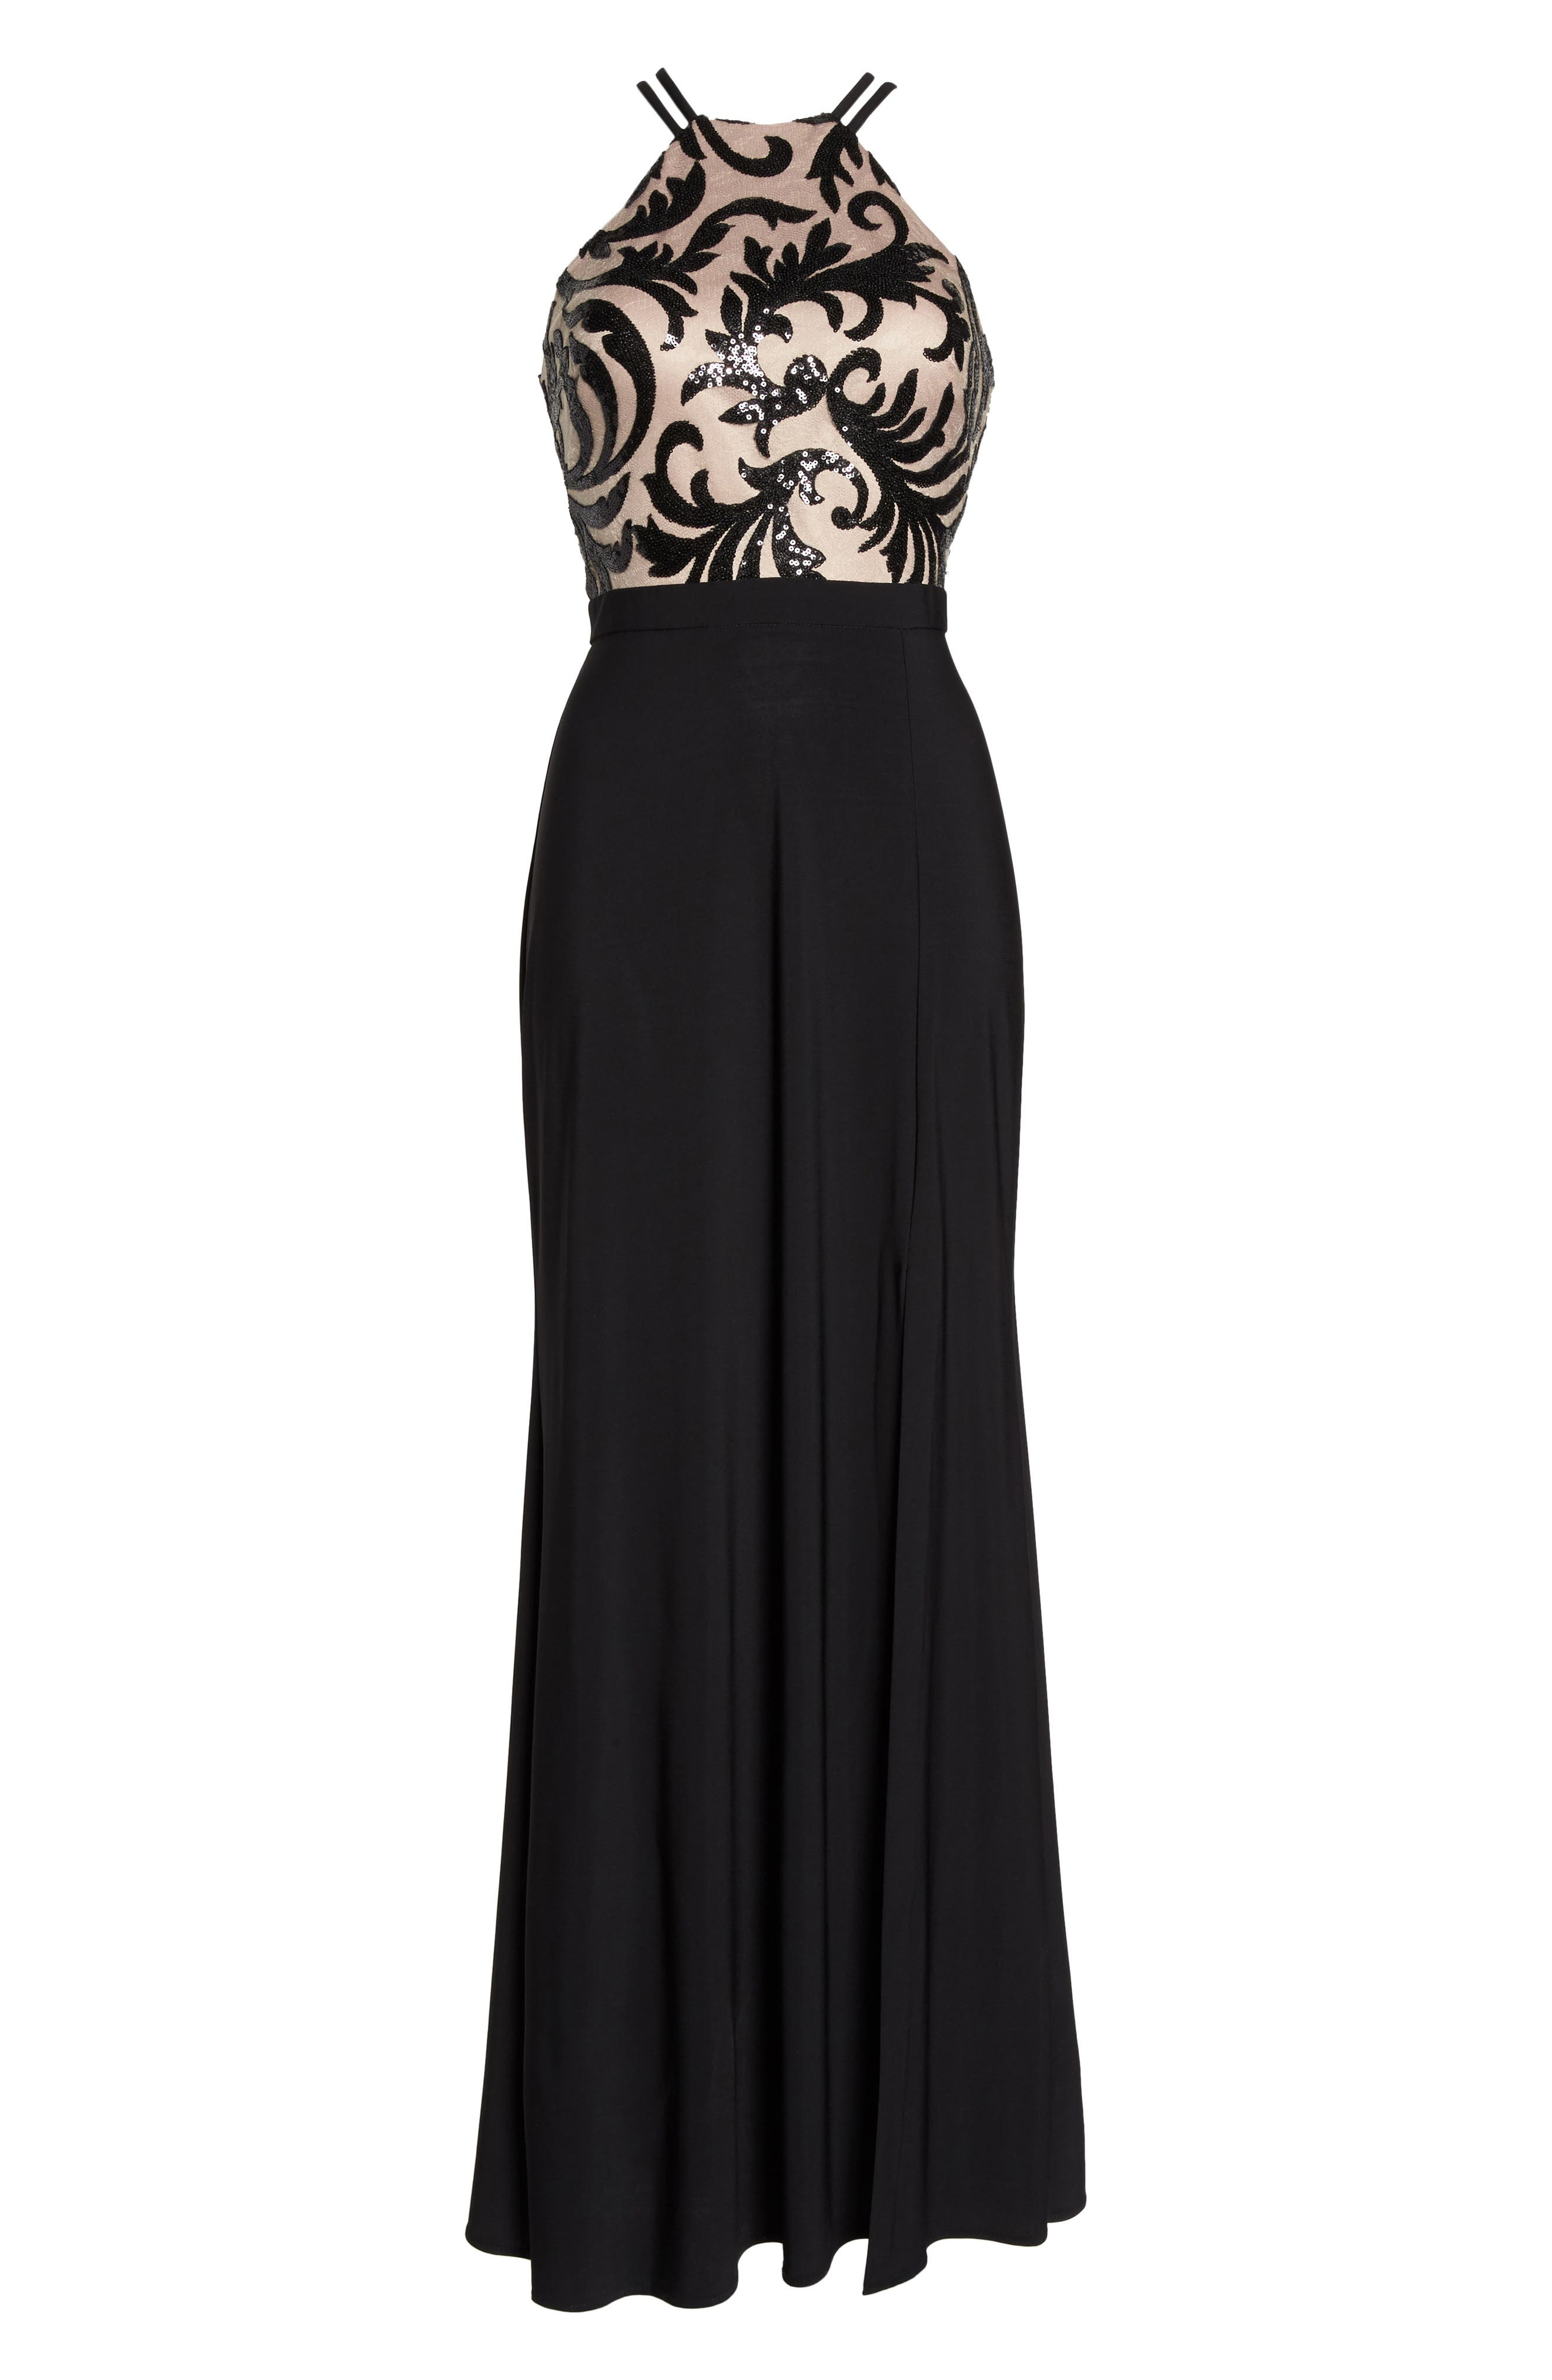 Sequin Embroidered Stretch Knit Gown,                             Alternate thumbnail 6, color,                             Black / Nude